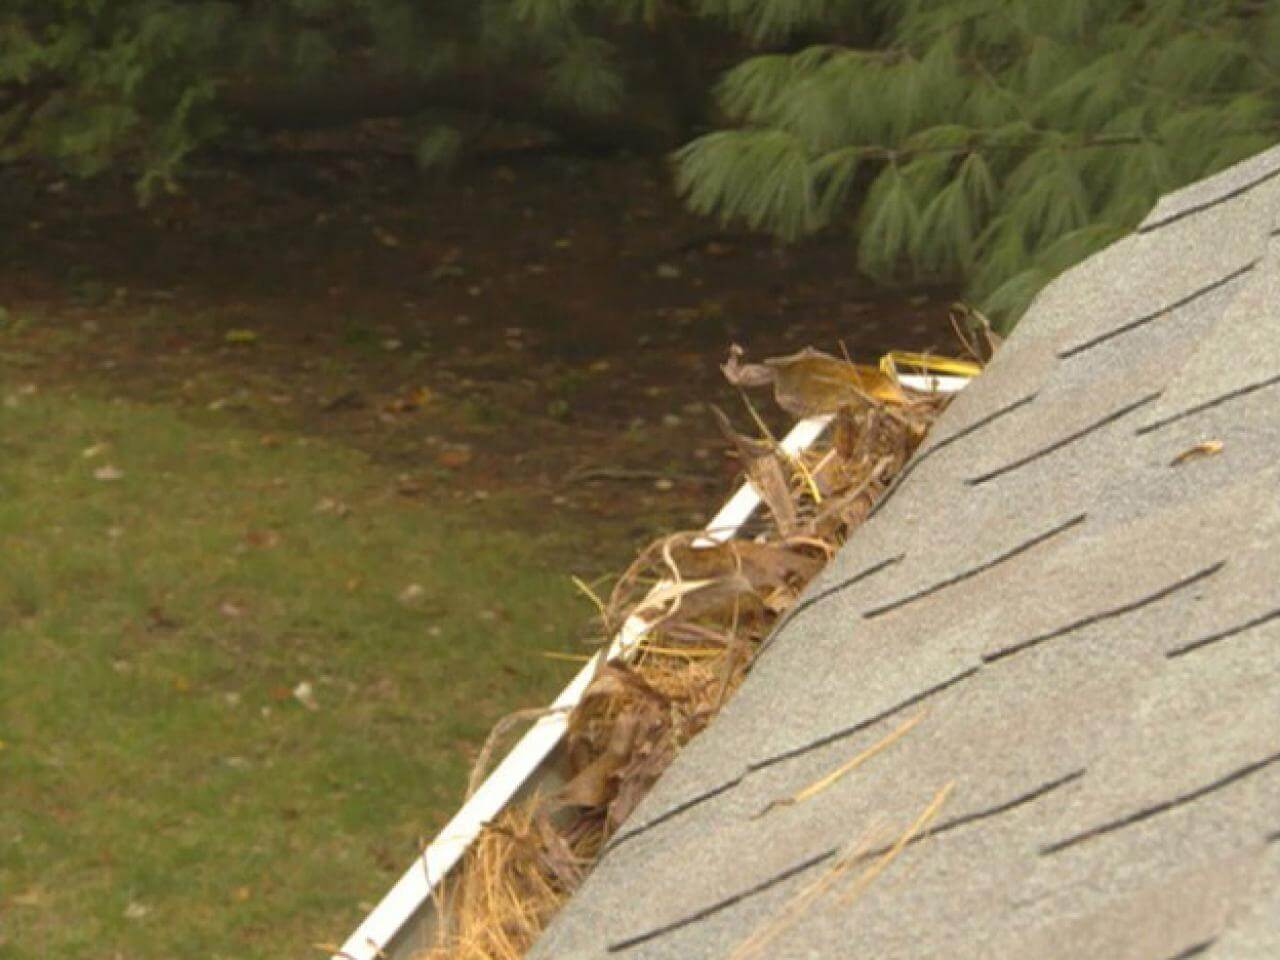 Gutters are sometimes overlooked when it comes to roof health